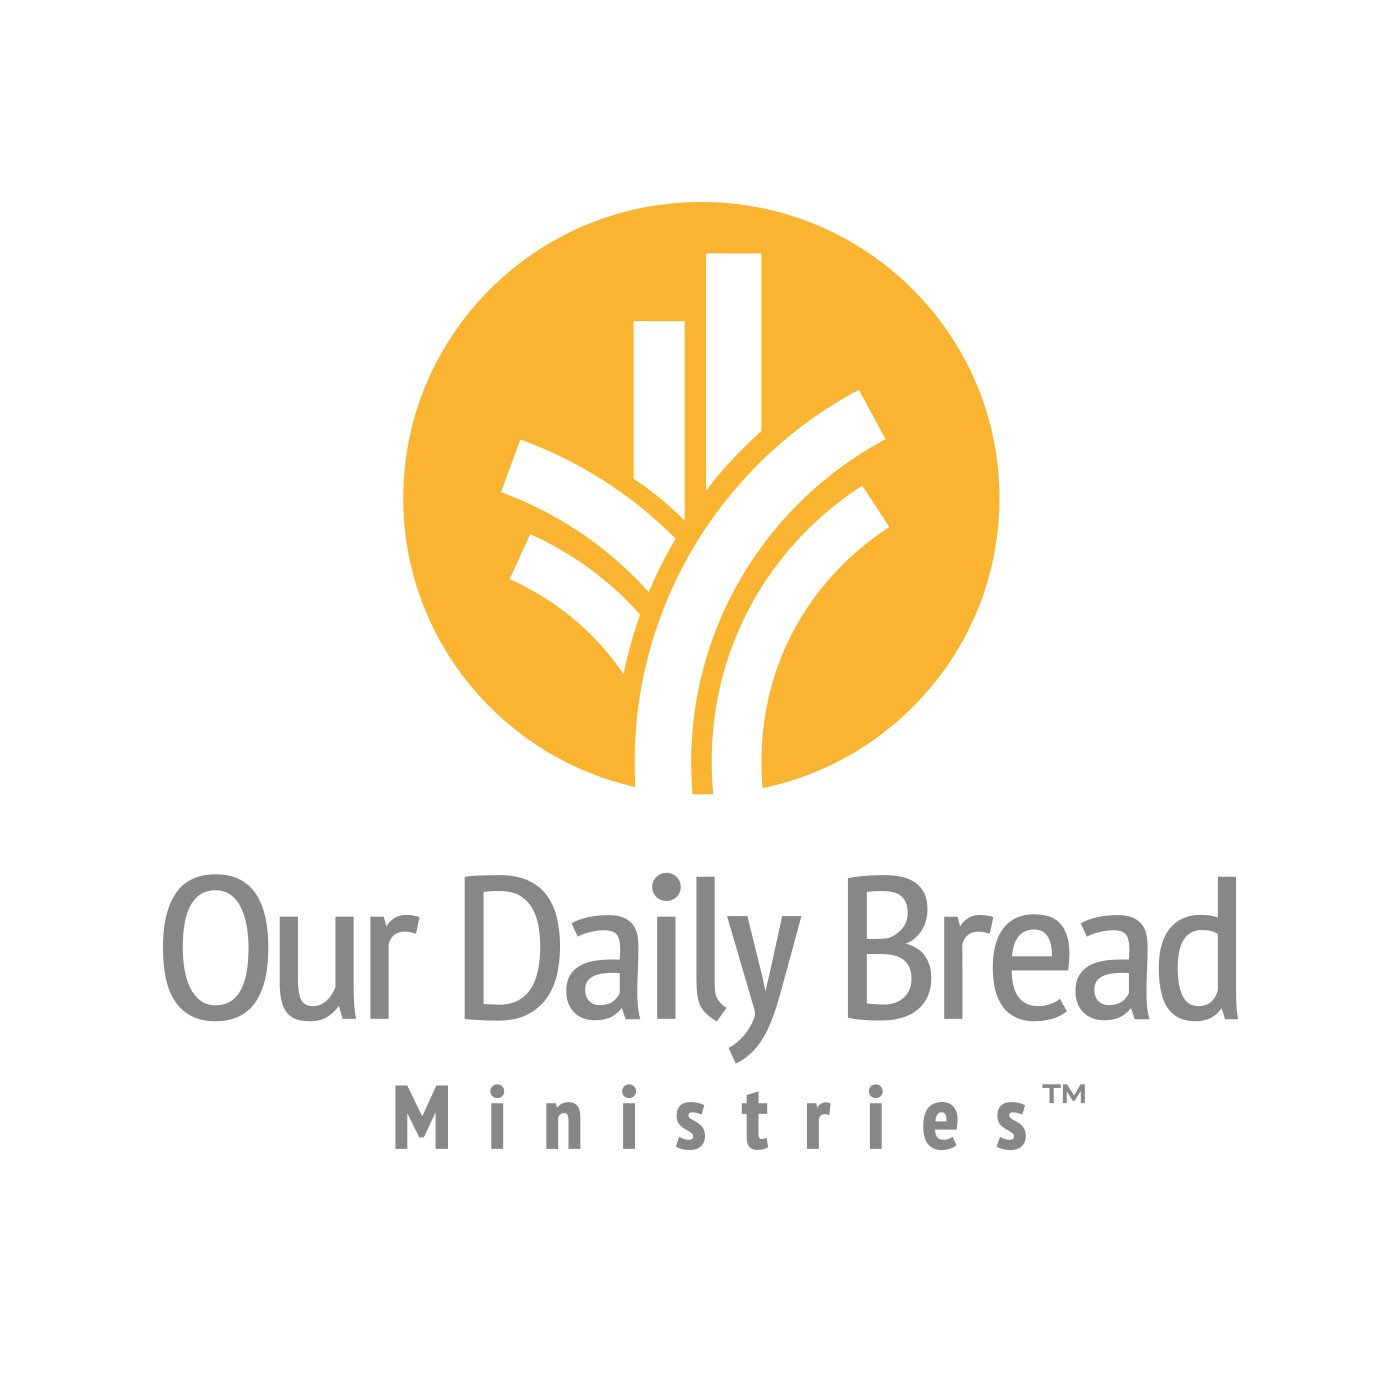 Our Daily Bread Tuesday 12th January 2021, Our Daily Bread Tuesday 12th January 2021 Devotional – Breaking The Cycle, Latest Nigeria News, Daily Devotionals & Celebrity Gossips - Chidispalace